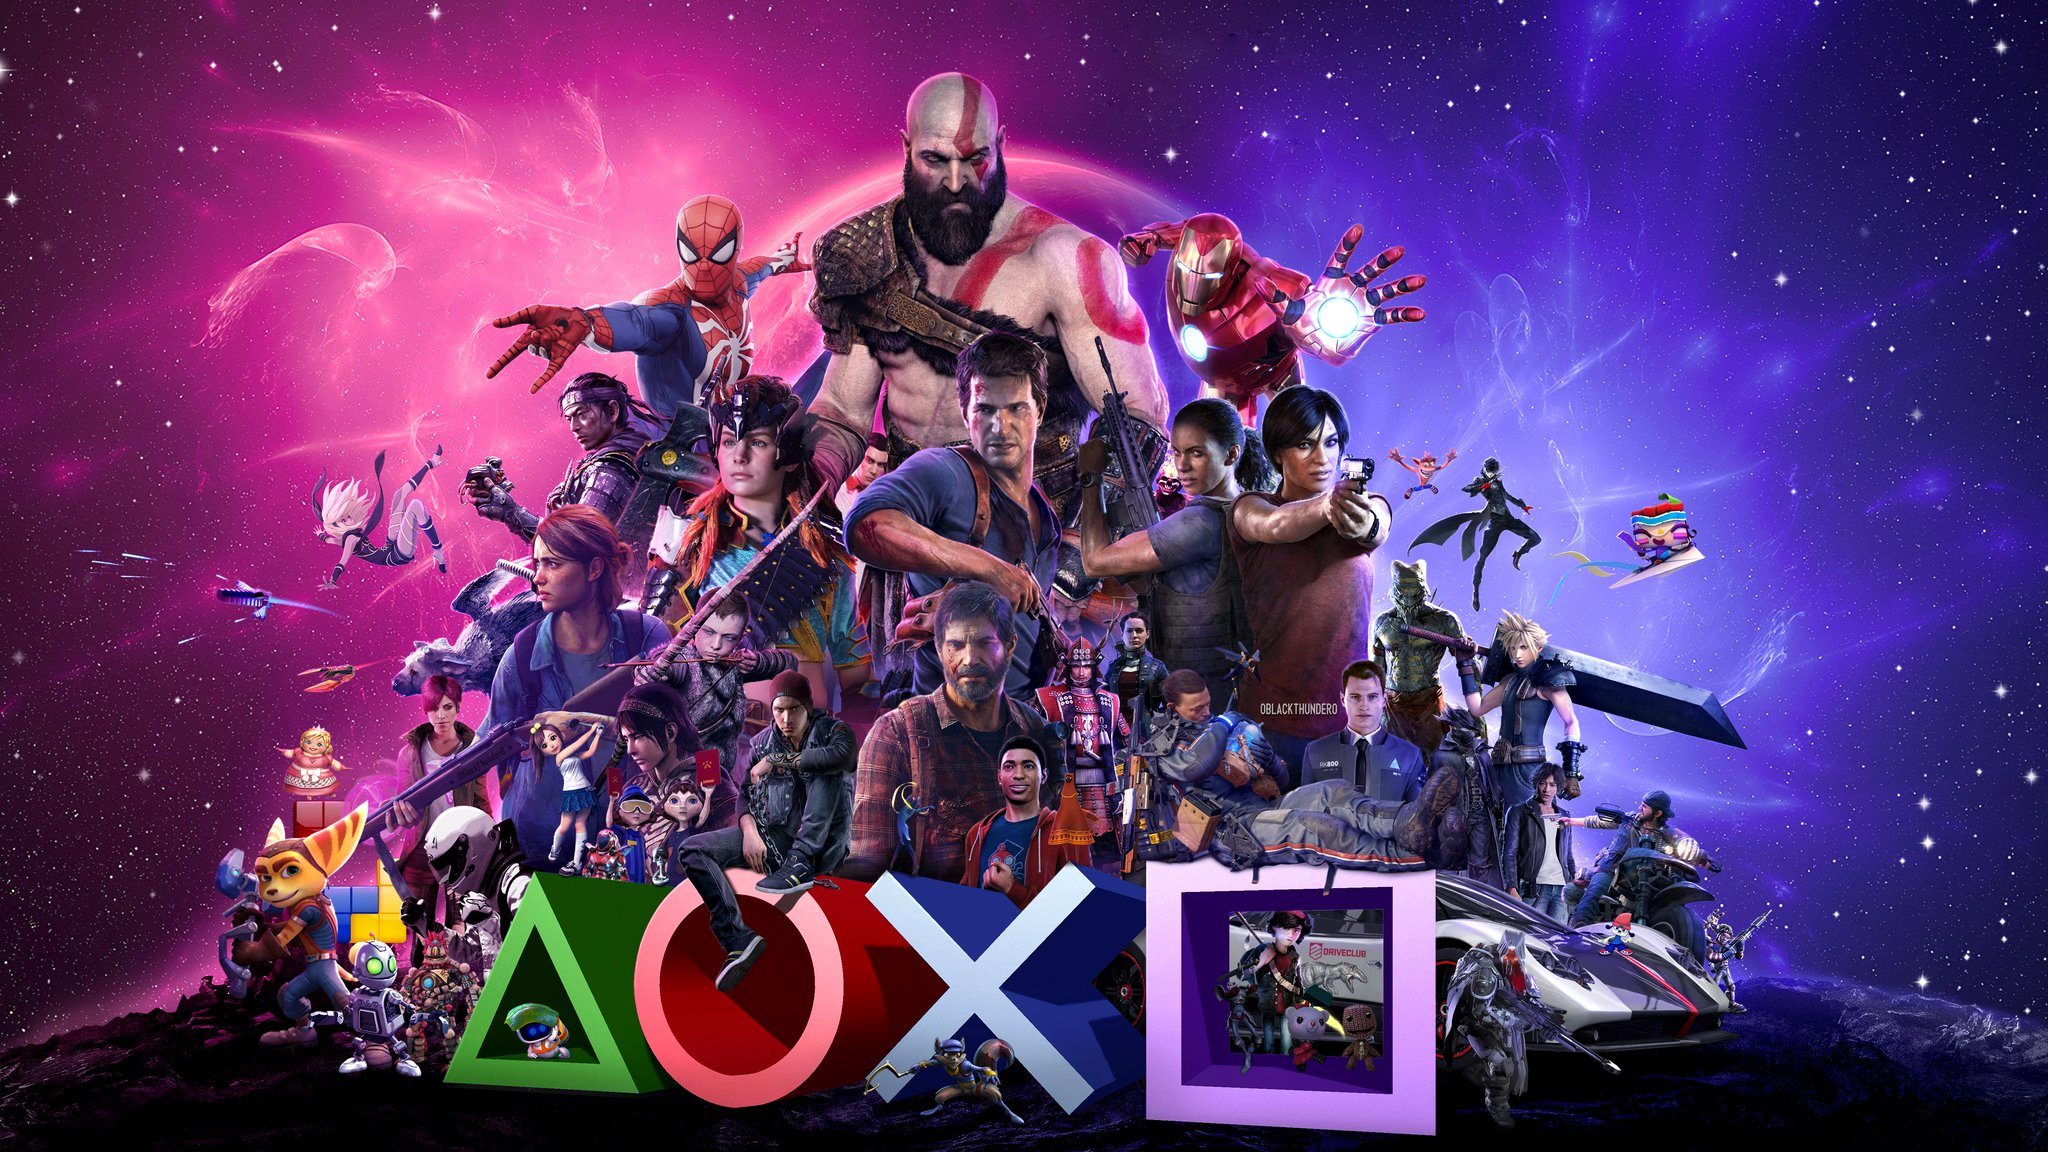 Playstation Fan Art Shows Off Over 50 Gaming Legends In One Scene